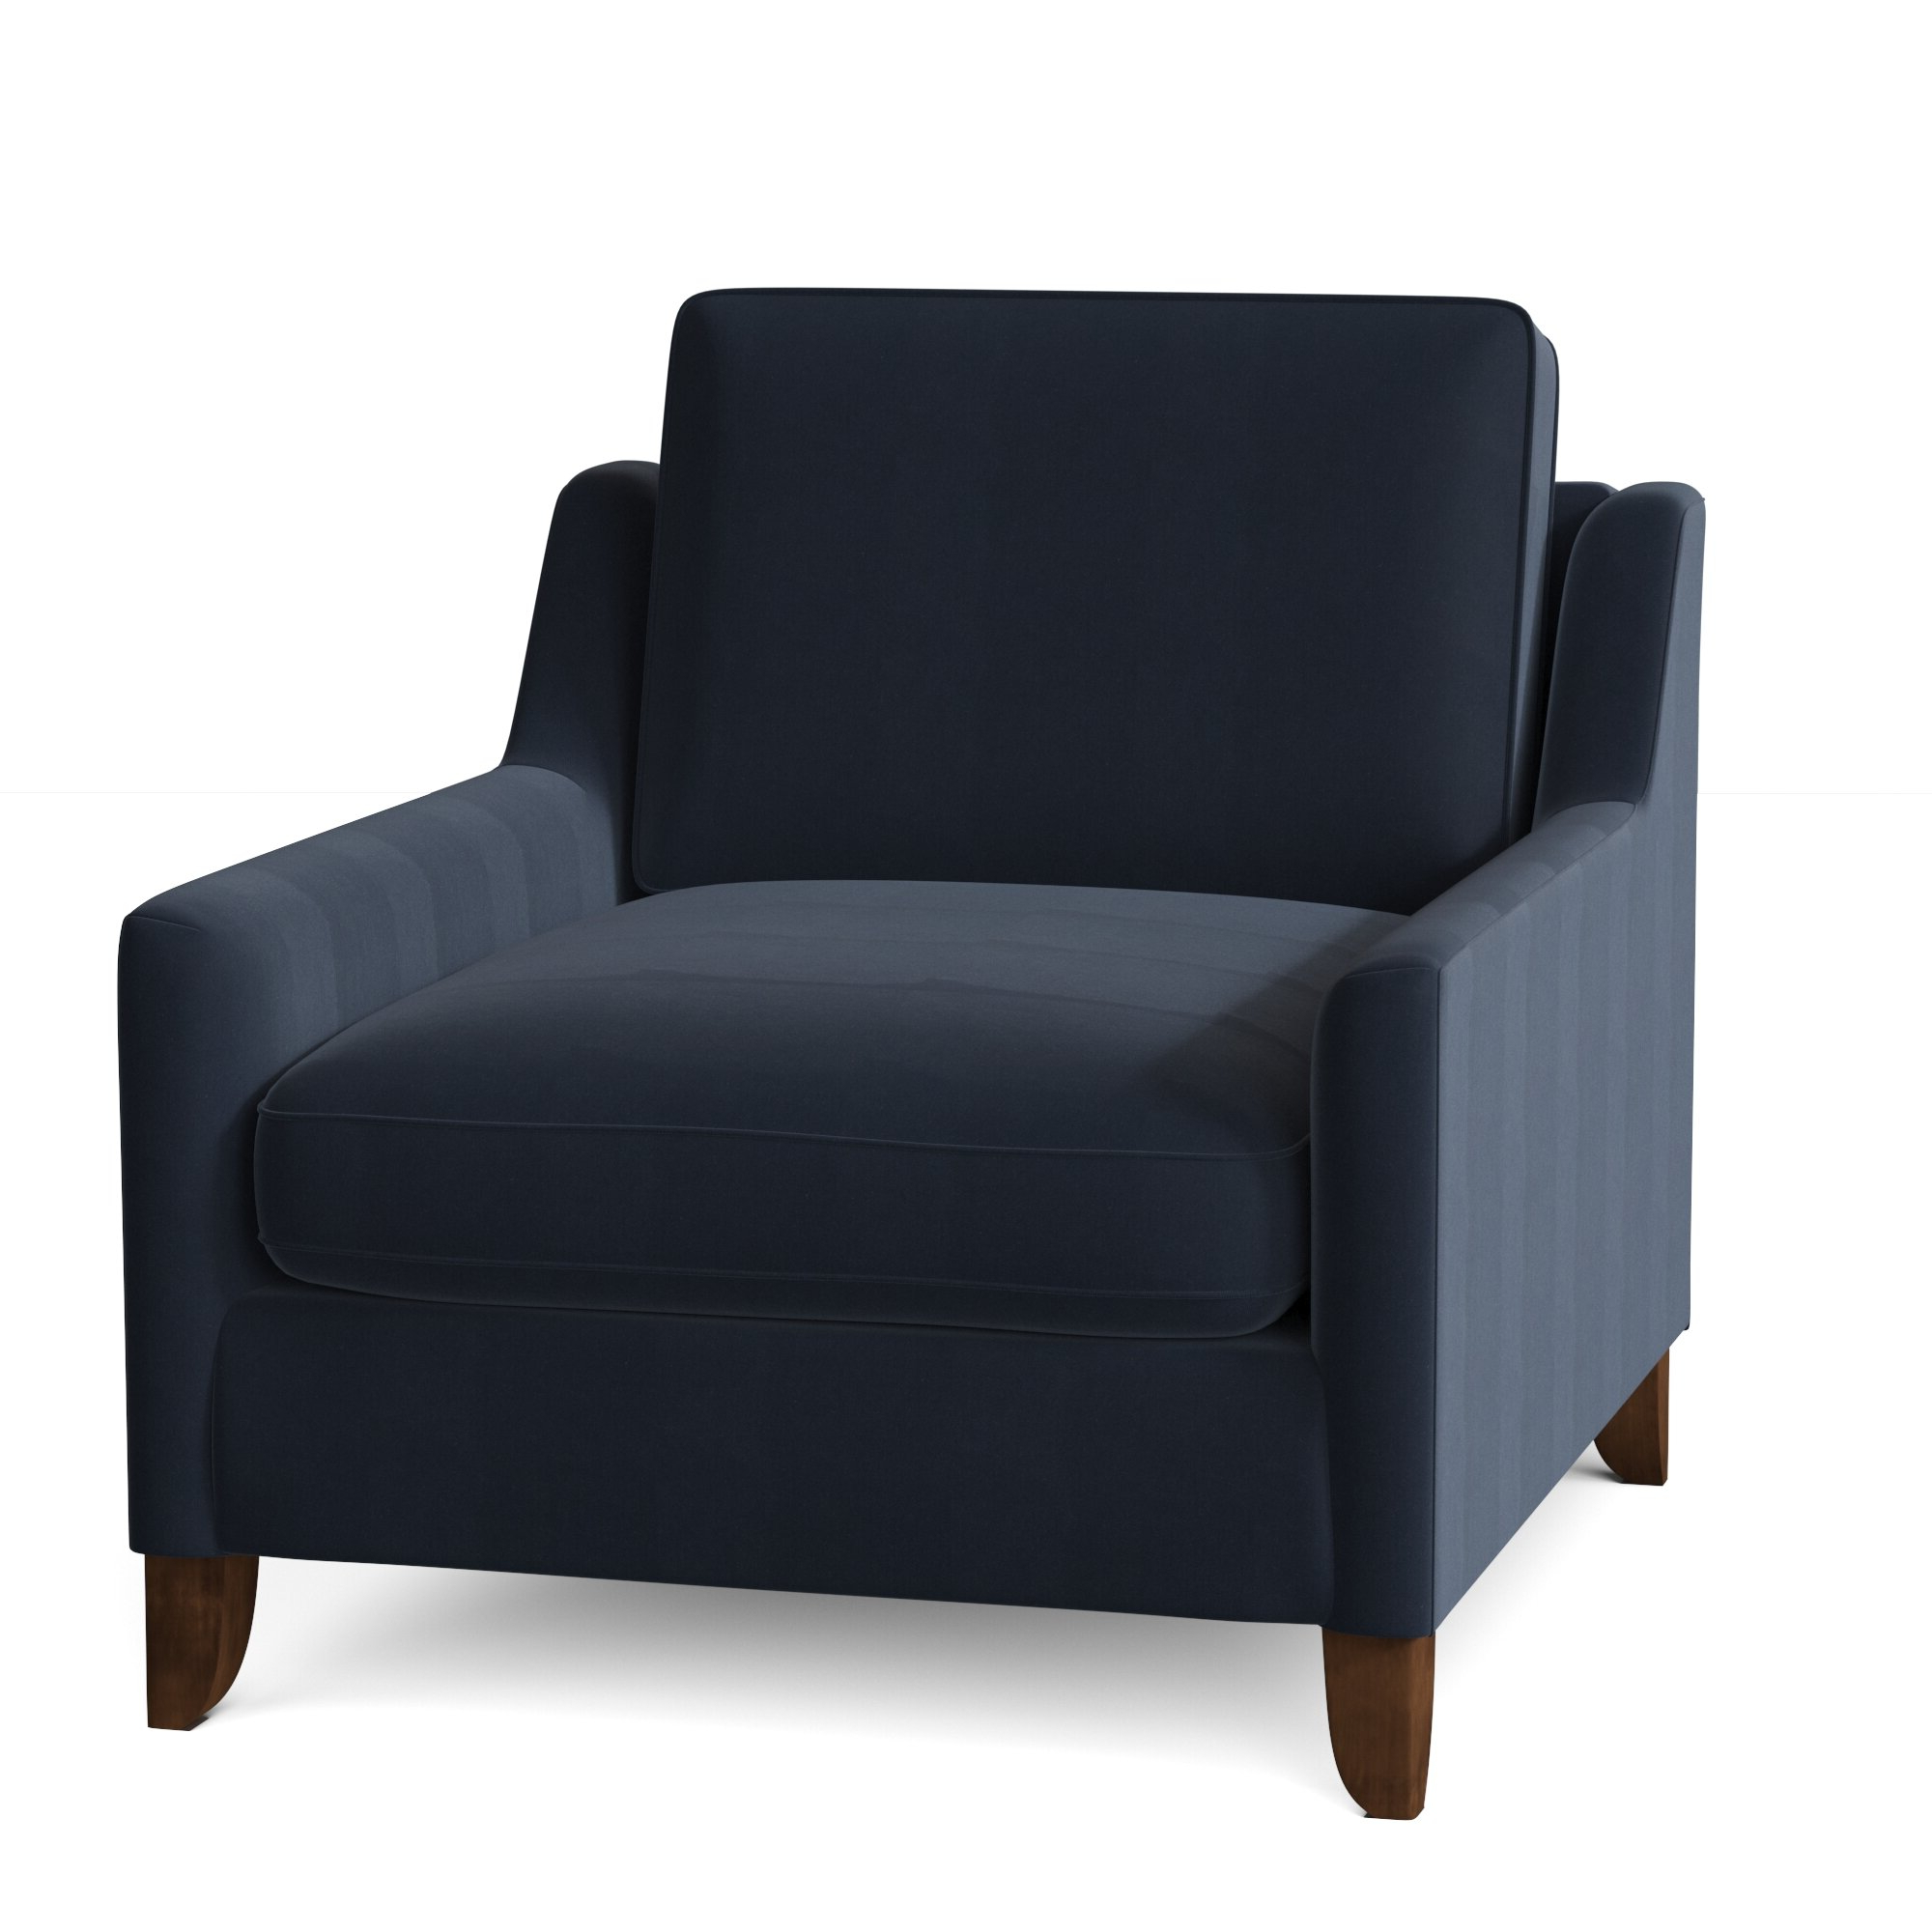 Haleigh Armchairs For Most Up To Date Haleigh Armchair (View 3 of 20)